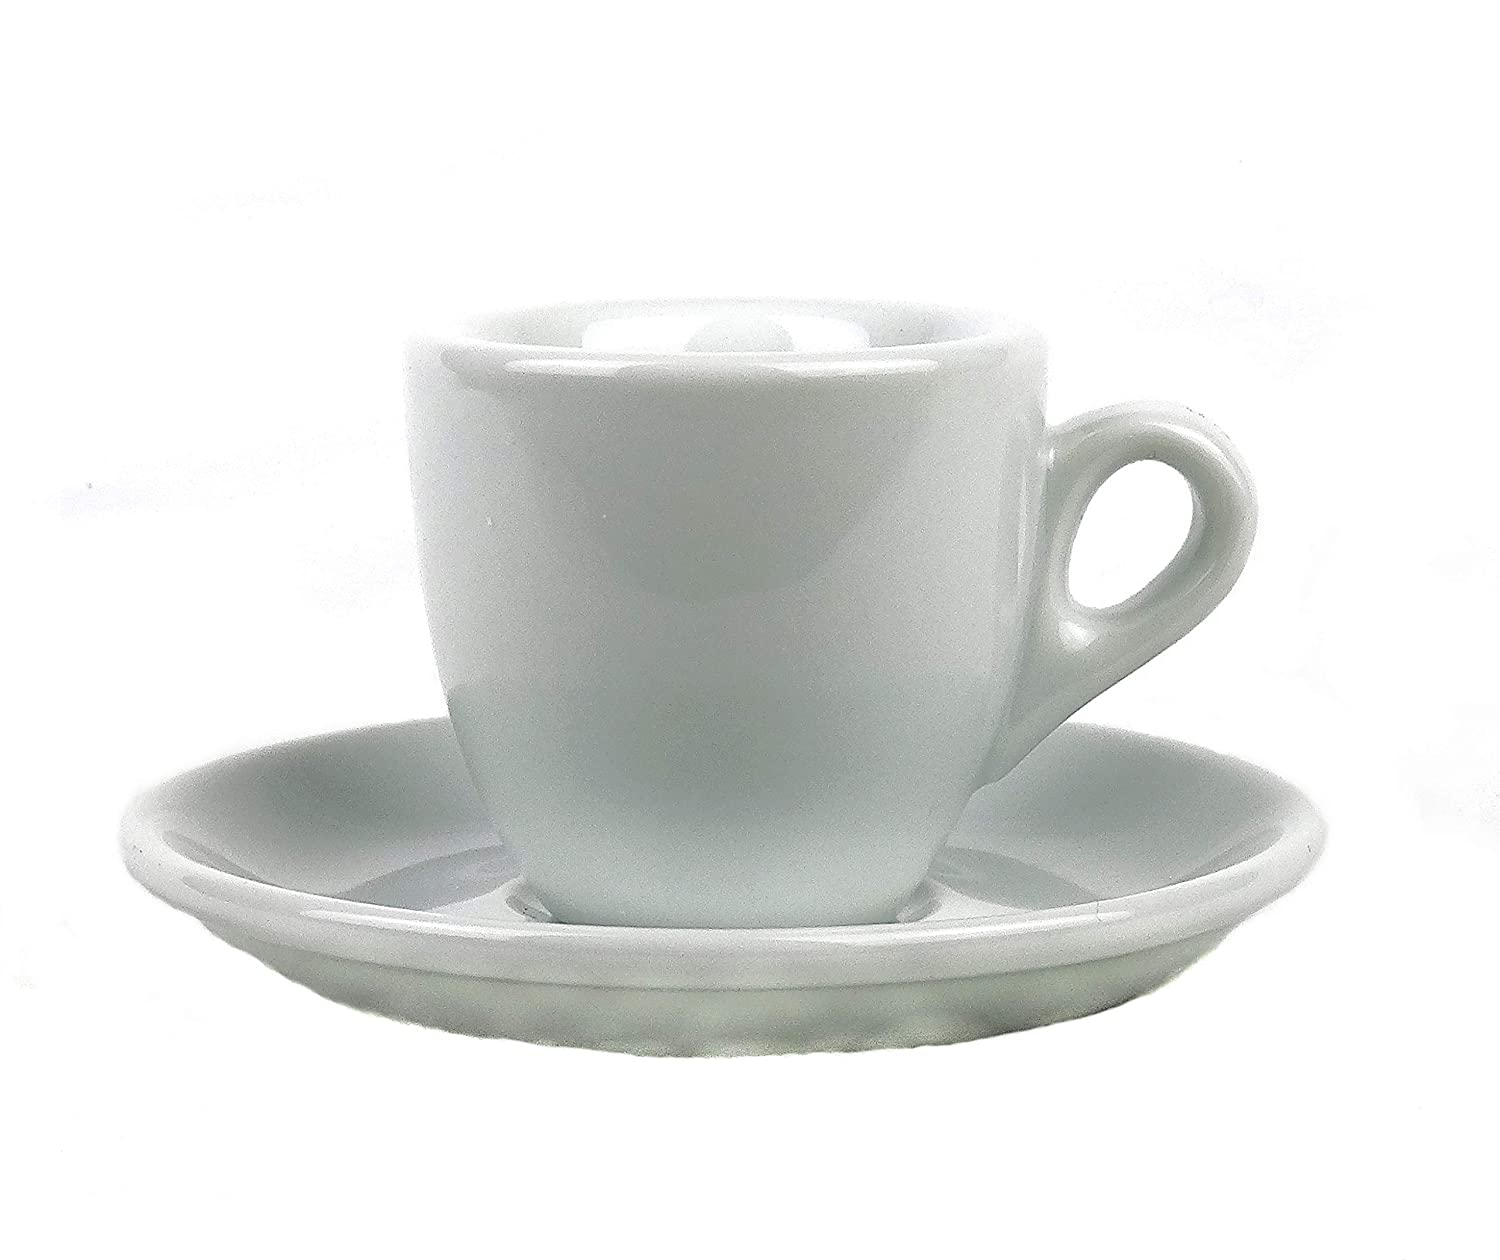 Extra Thick-walled Espresso Cup (1Cup)/(6Cups & Saucers) Moka Consorten